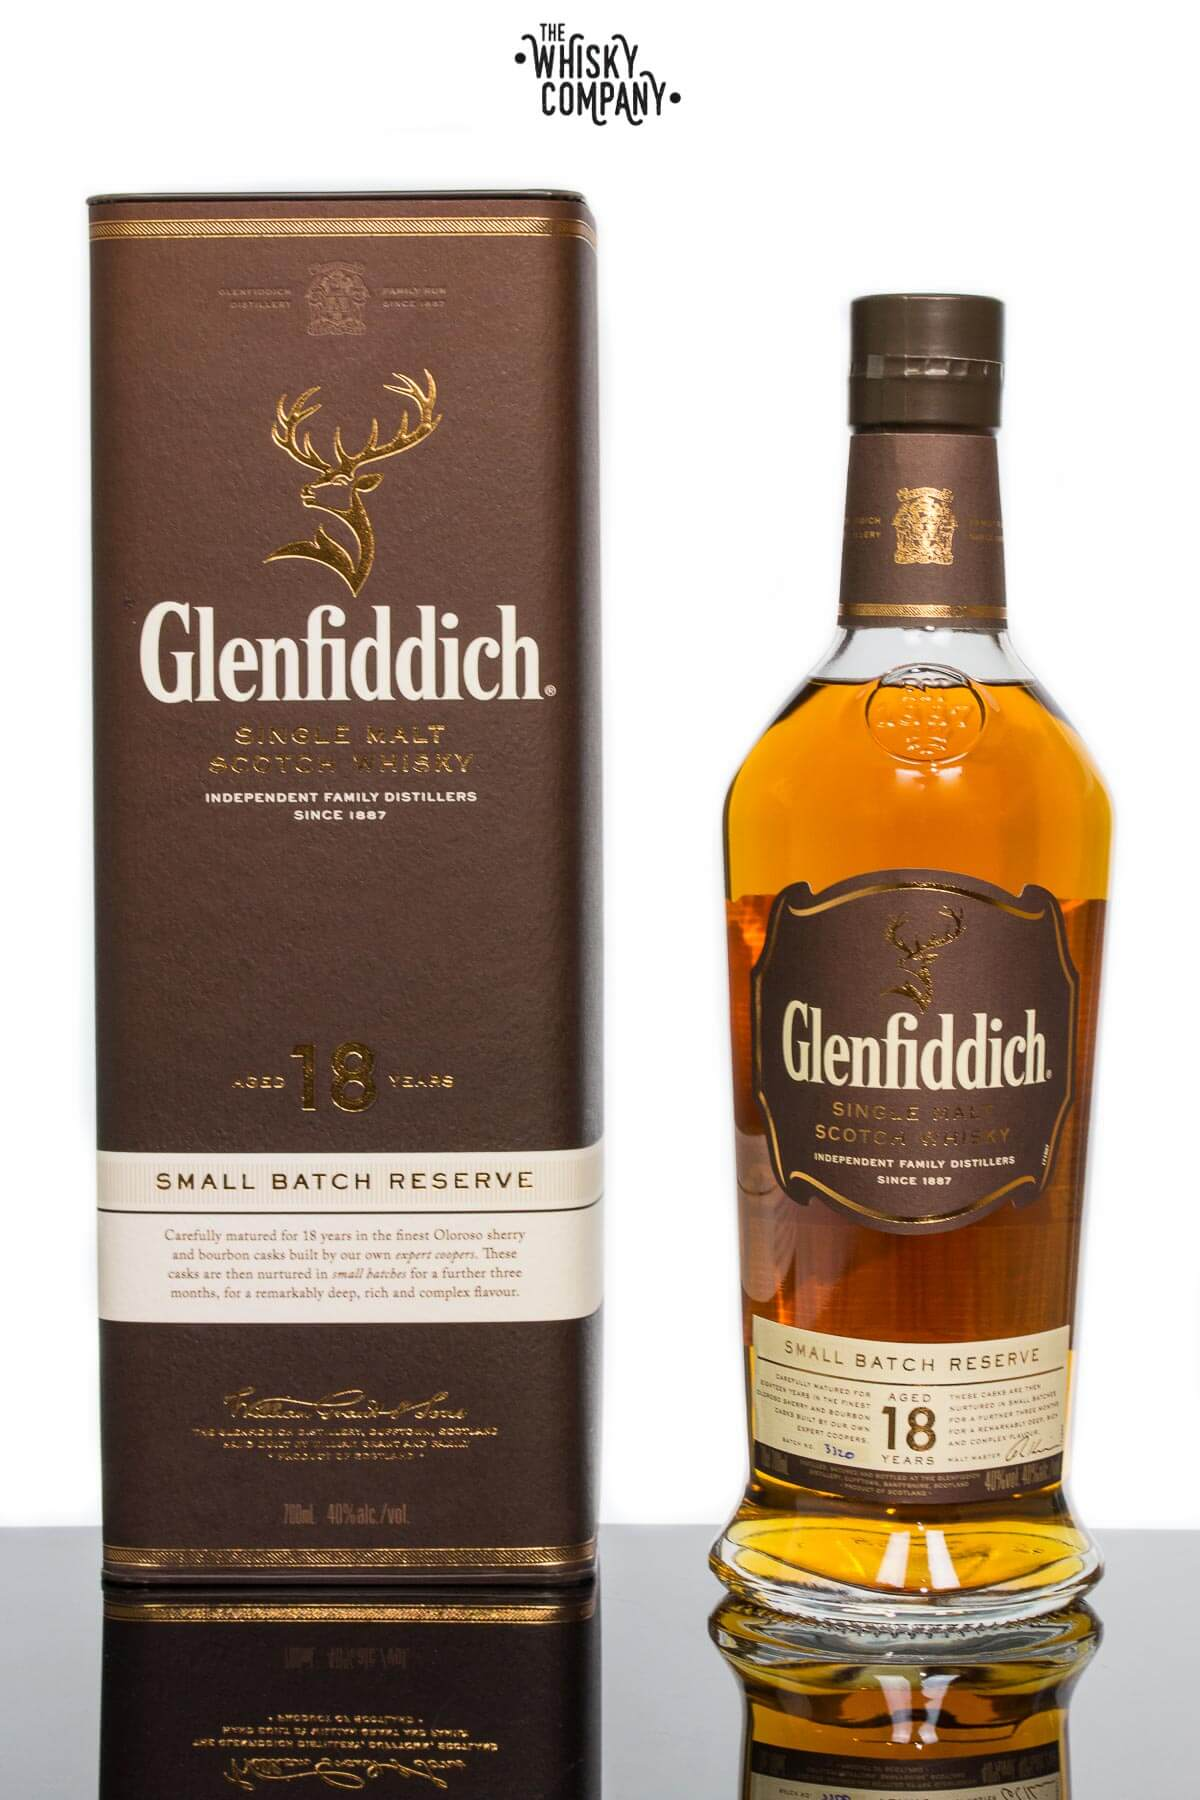 Glenfiddich Aged 18 Years Speyside Single Malt Scotch Whisky